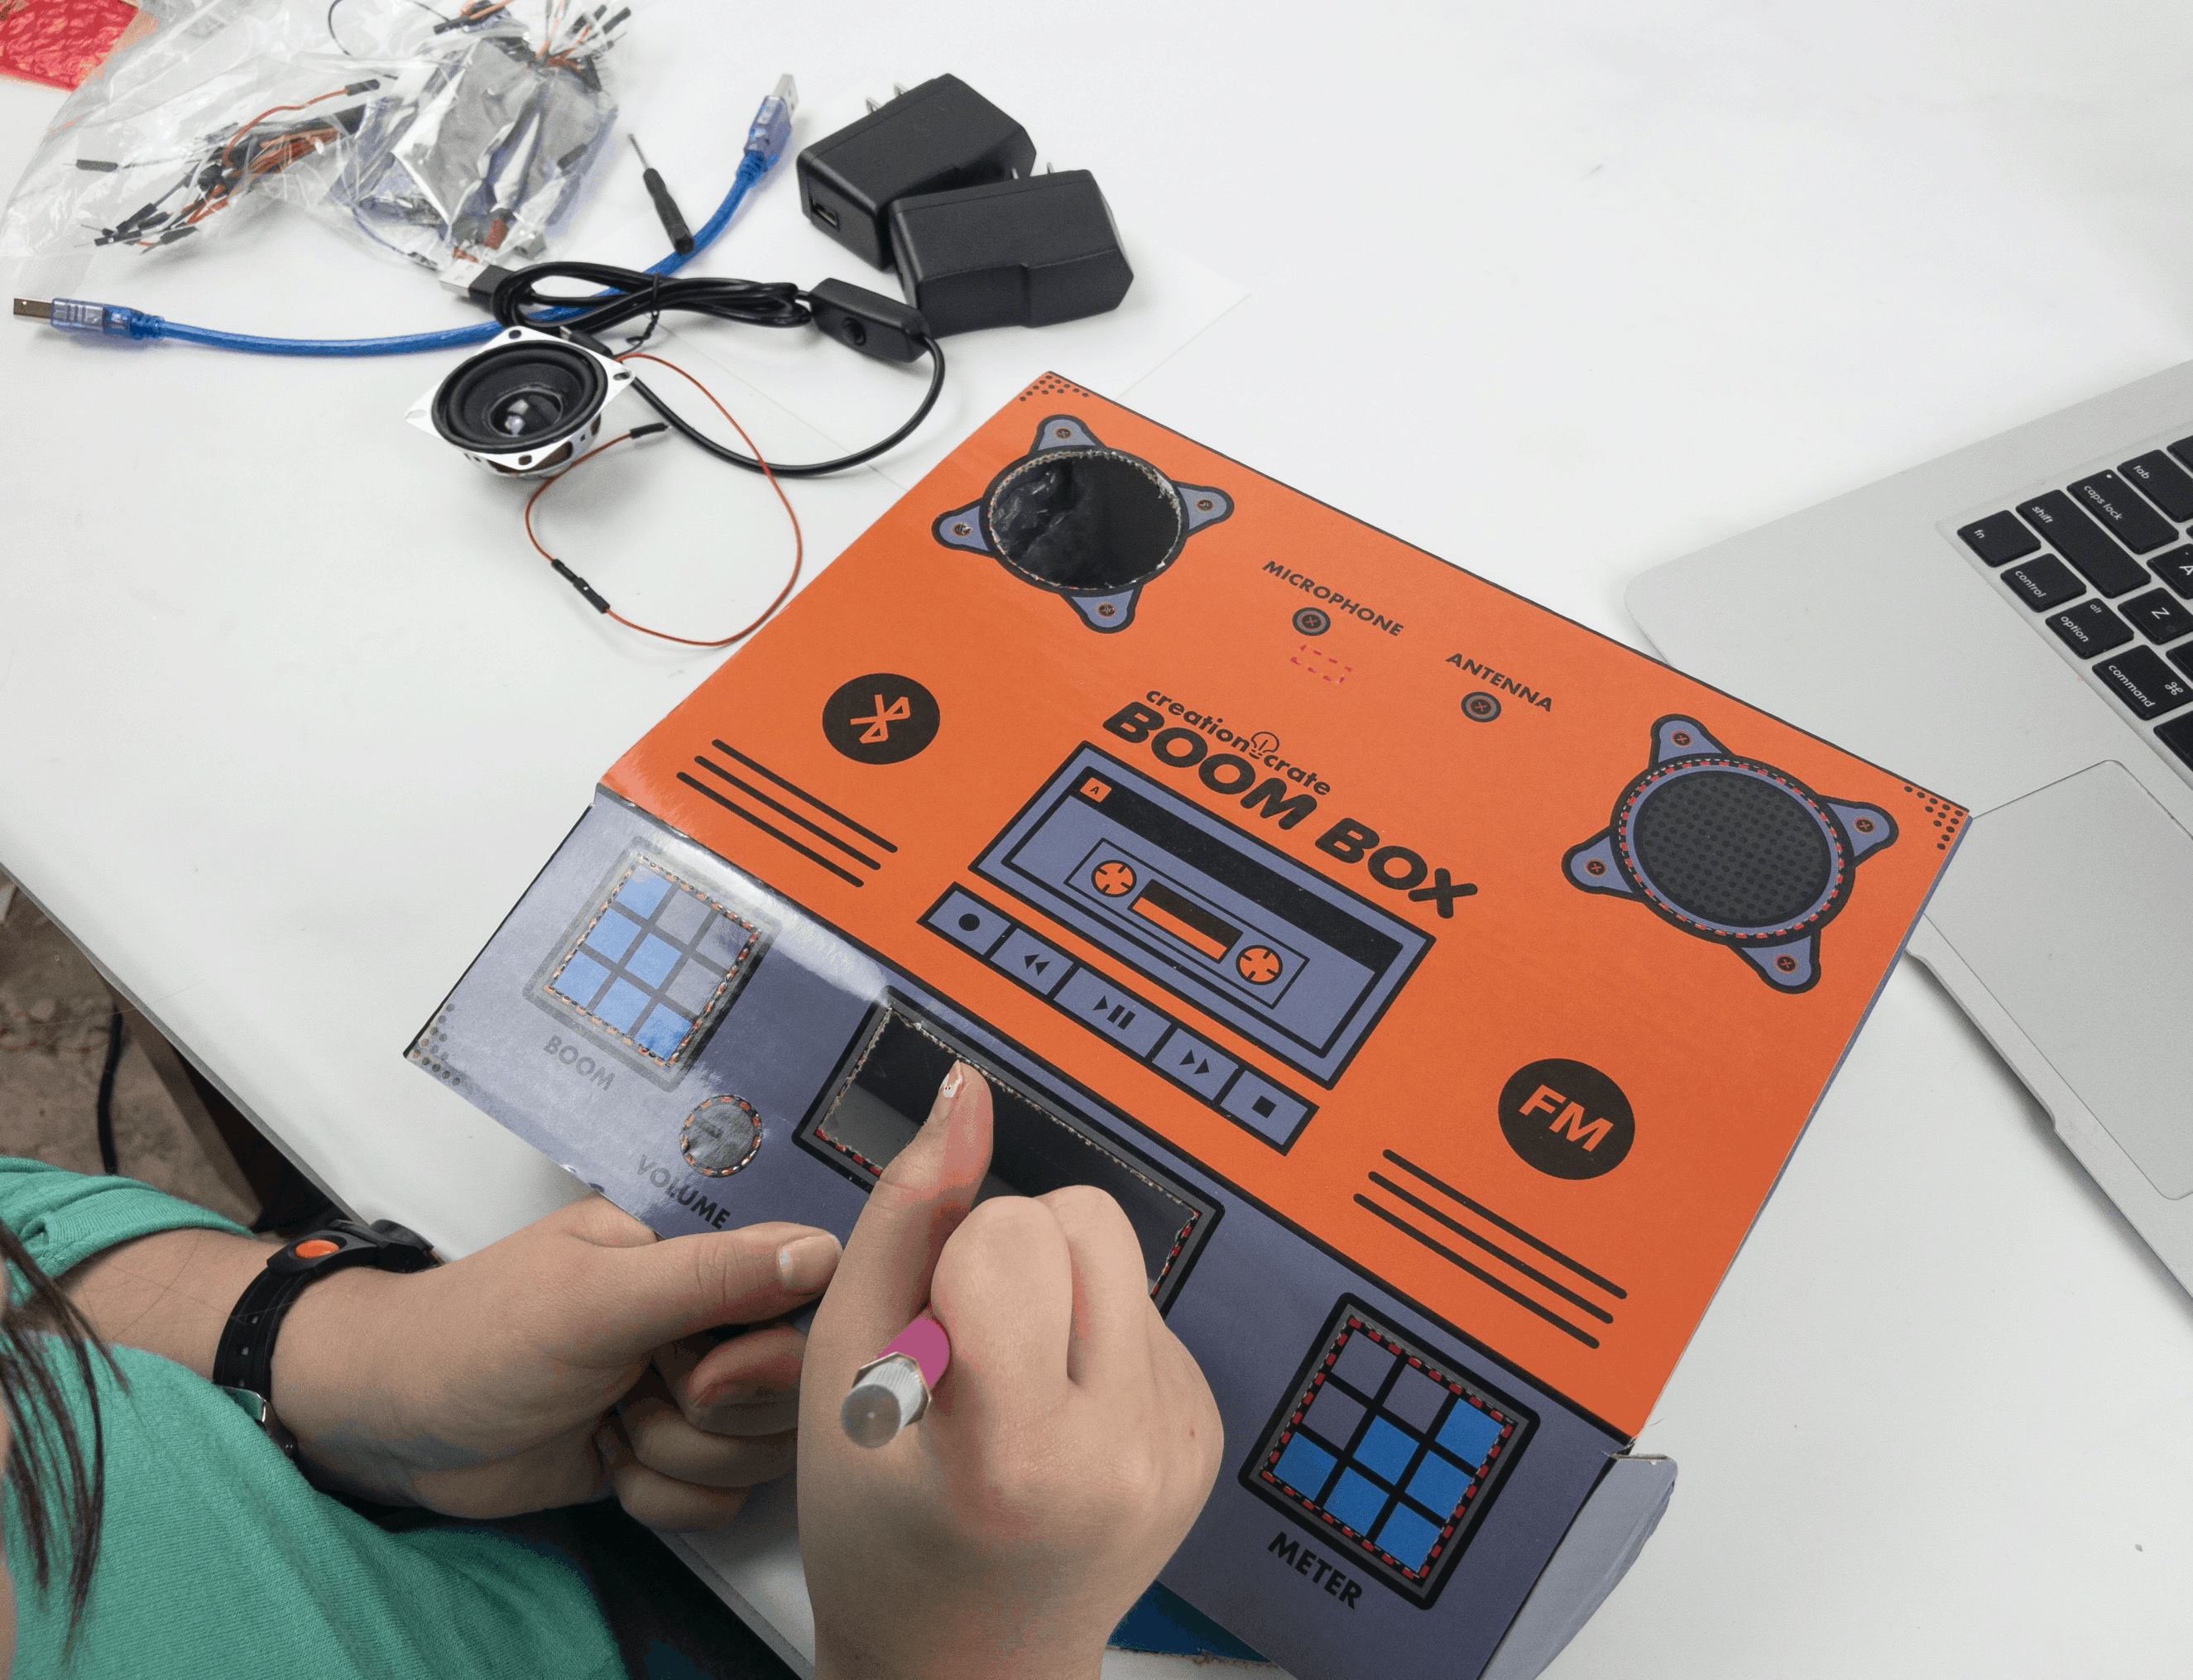 Creation Crate Holiday Deal: Save 25% on Electronics Programming Subscriptions!